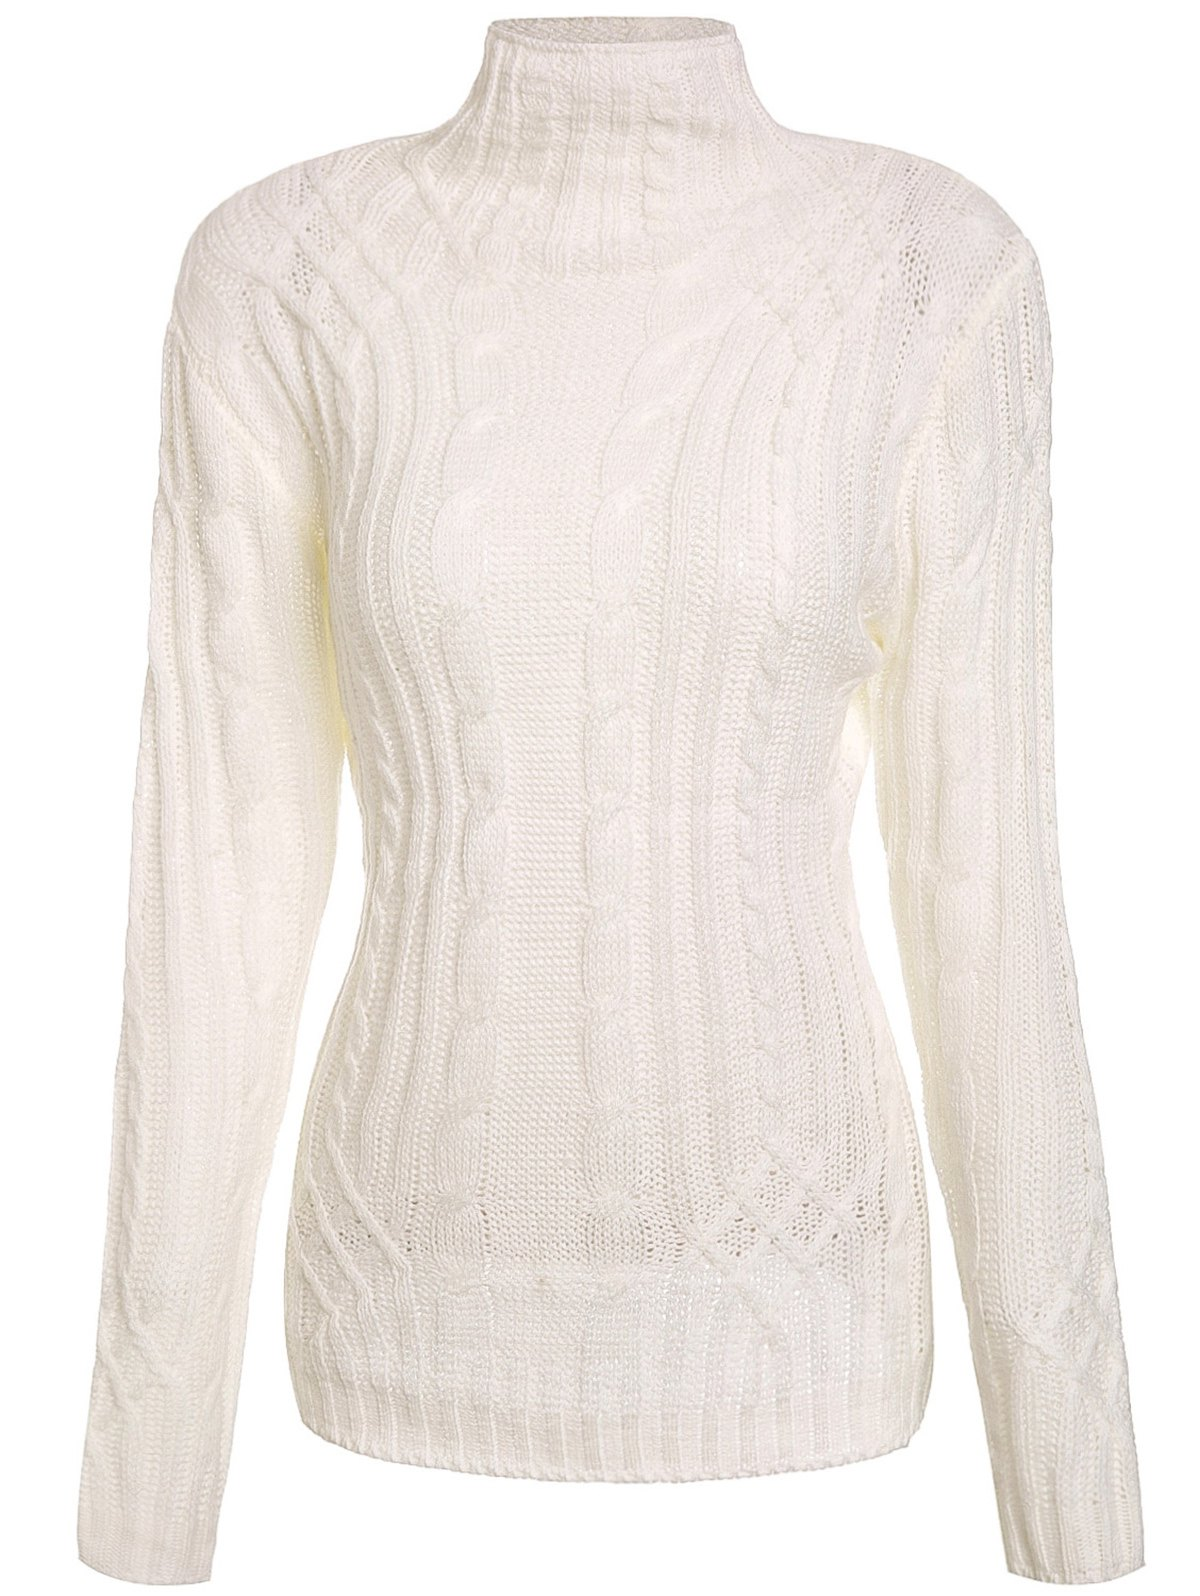 Charming Solid Color Turtleneck Twist Wave Thick Pullover Sweater For Women - WHITE S